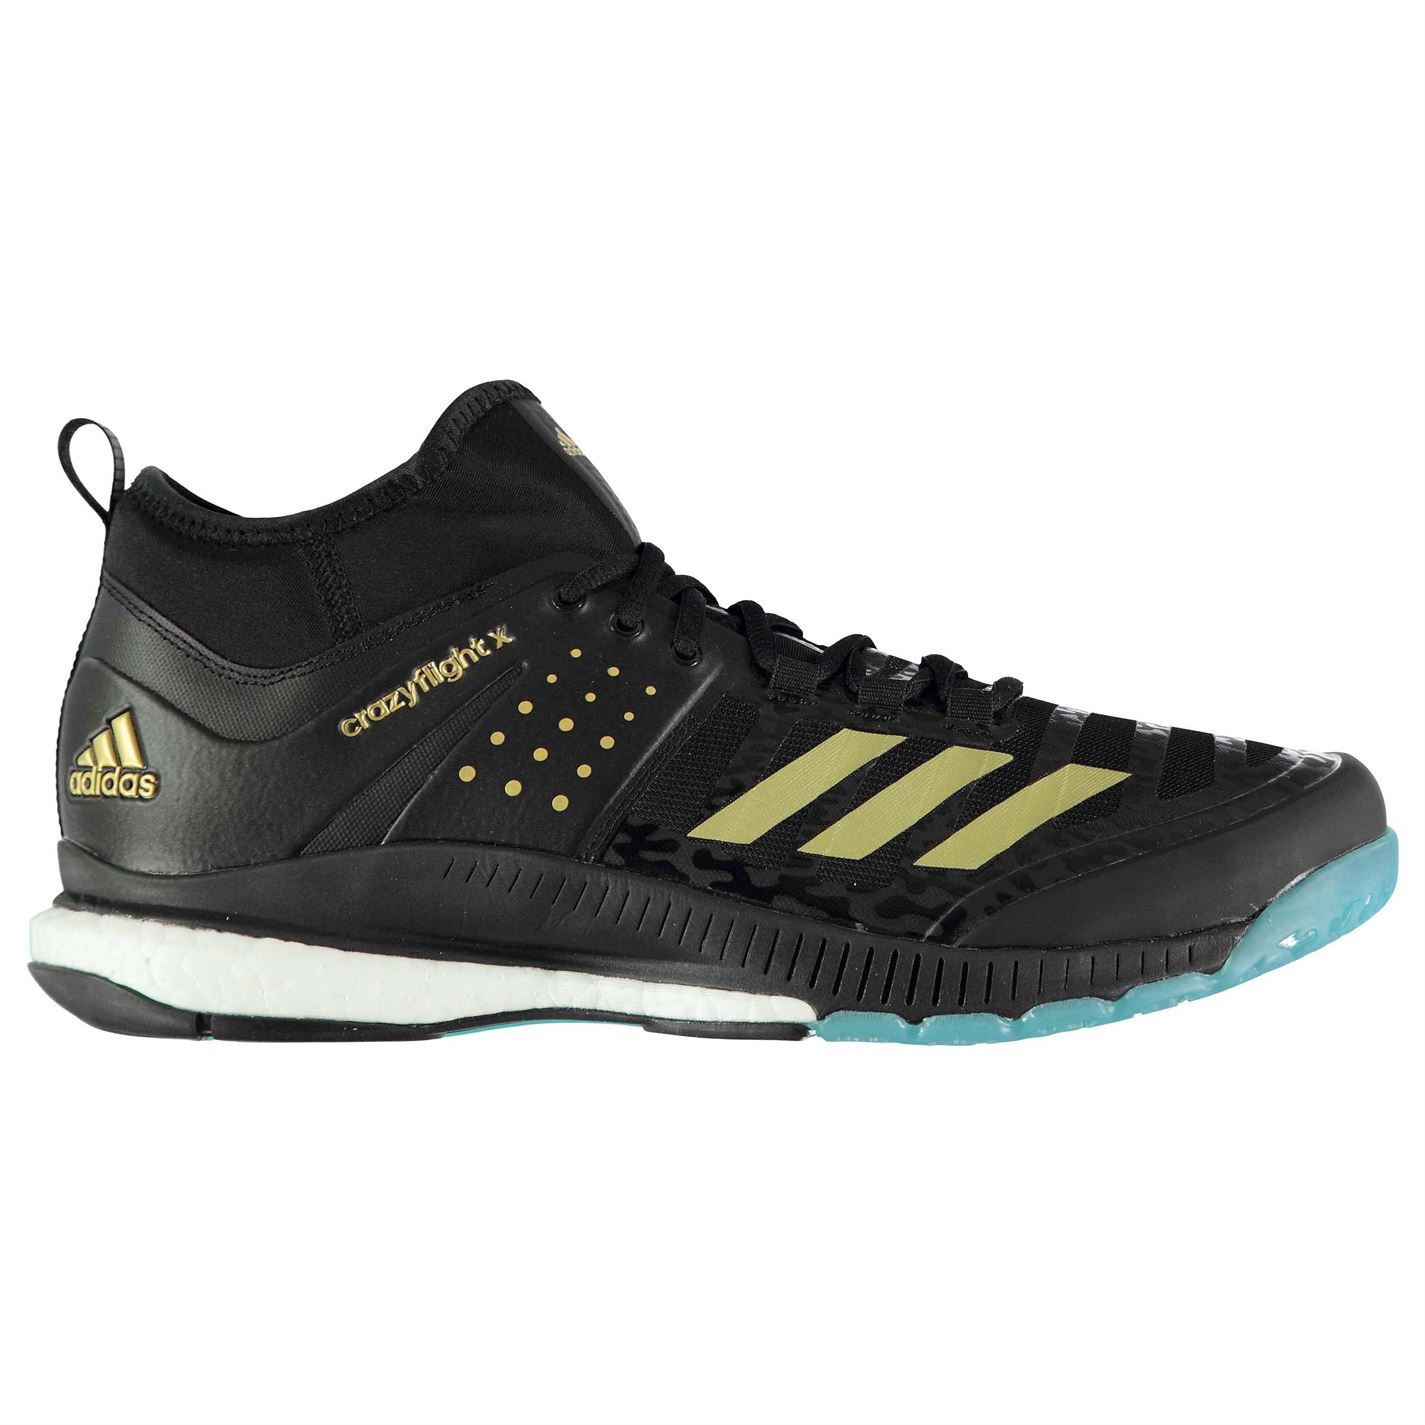 29f0ac7a0 The Mens adidas Crazyflight X Volleyball Shoes are perfect for the next  time you hit the court, featuring energy returning boost cushioning to the  midsole ...